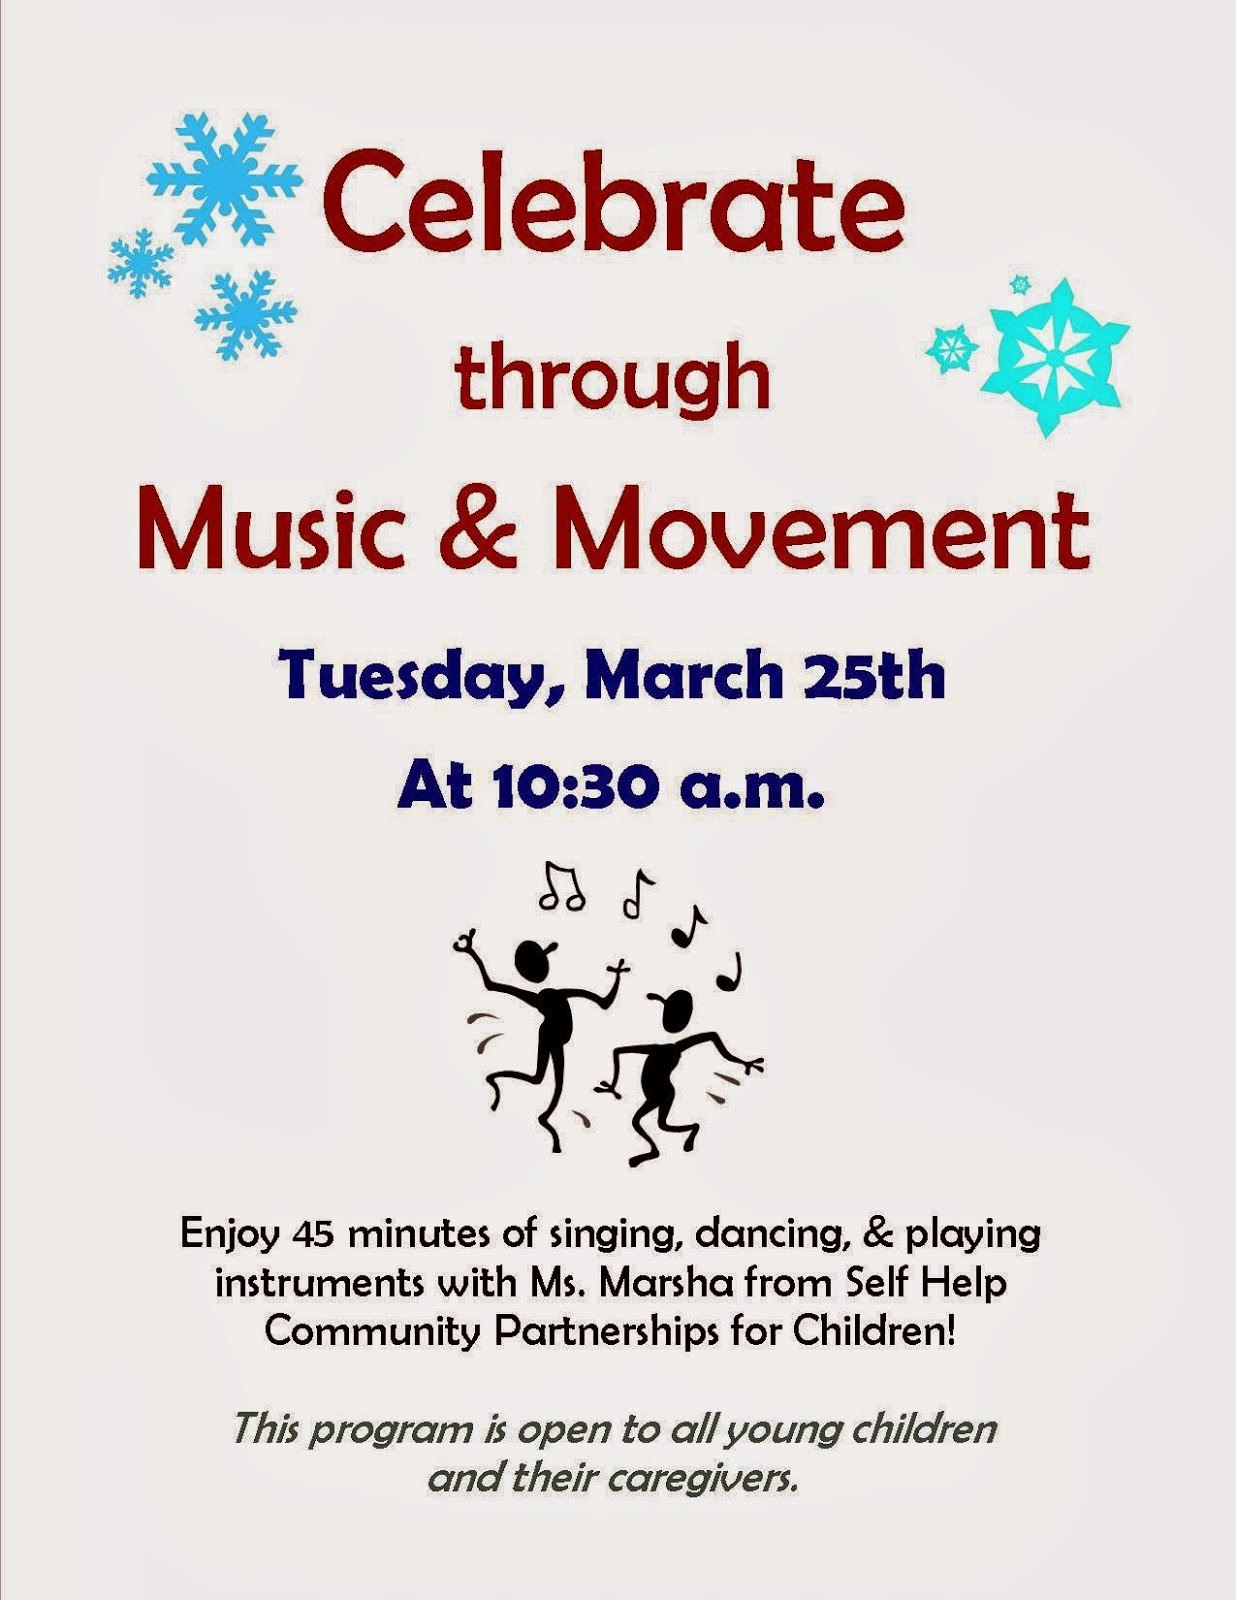 Celebrate through music and movement